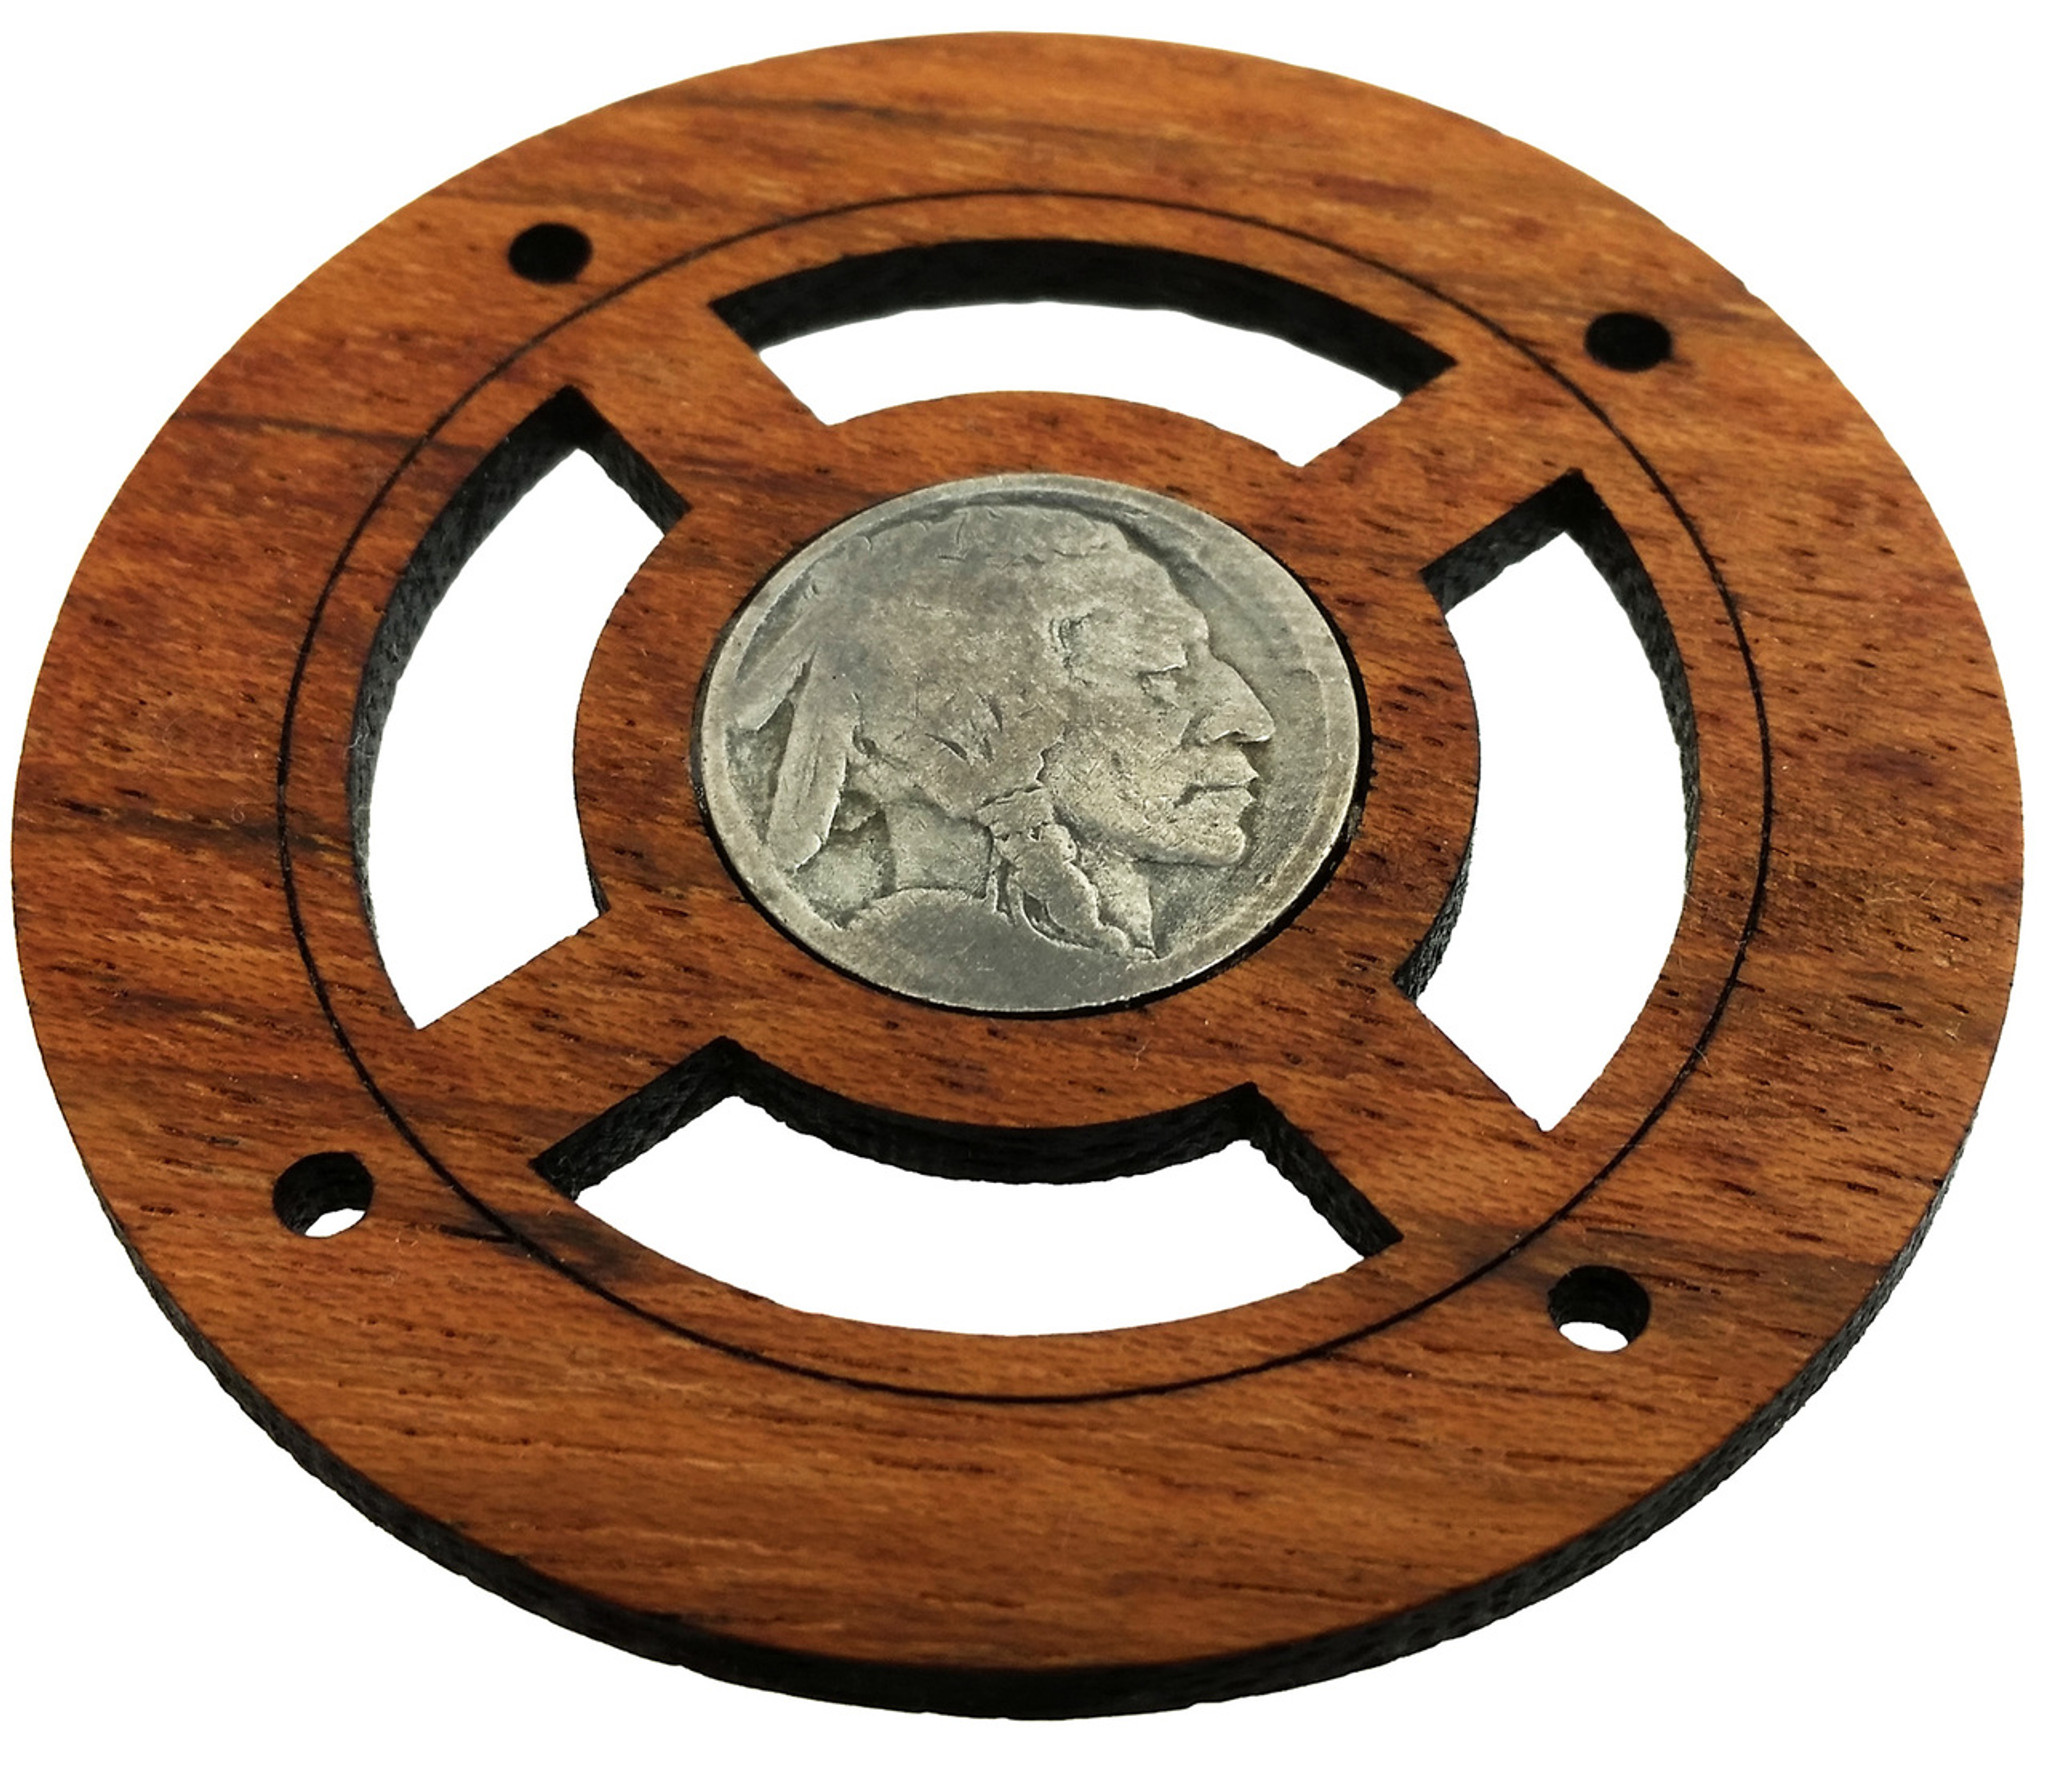 buffalo nickel front side vintage coin sound hole cover for cigar box guitars c b gitty. Black Bedroom Furniture Sets. Home Design Ideas